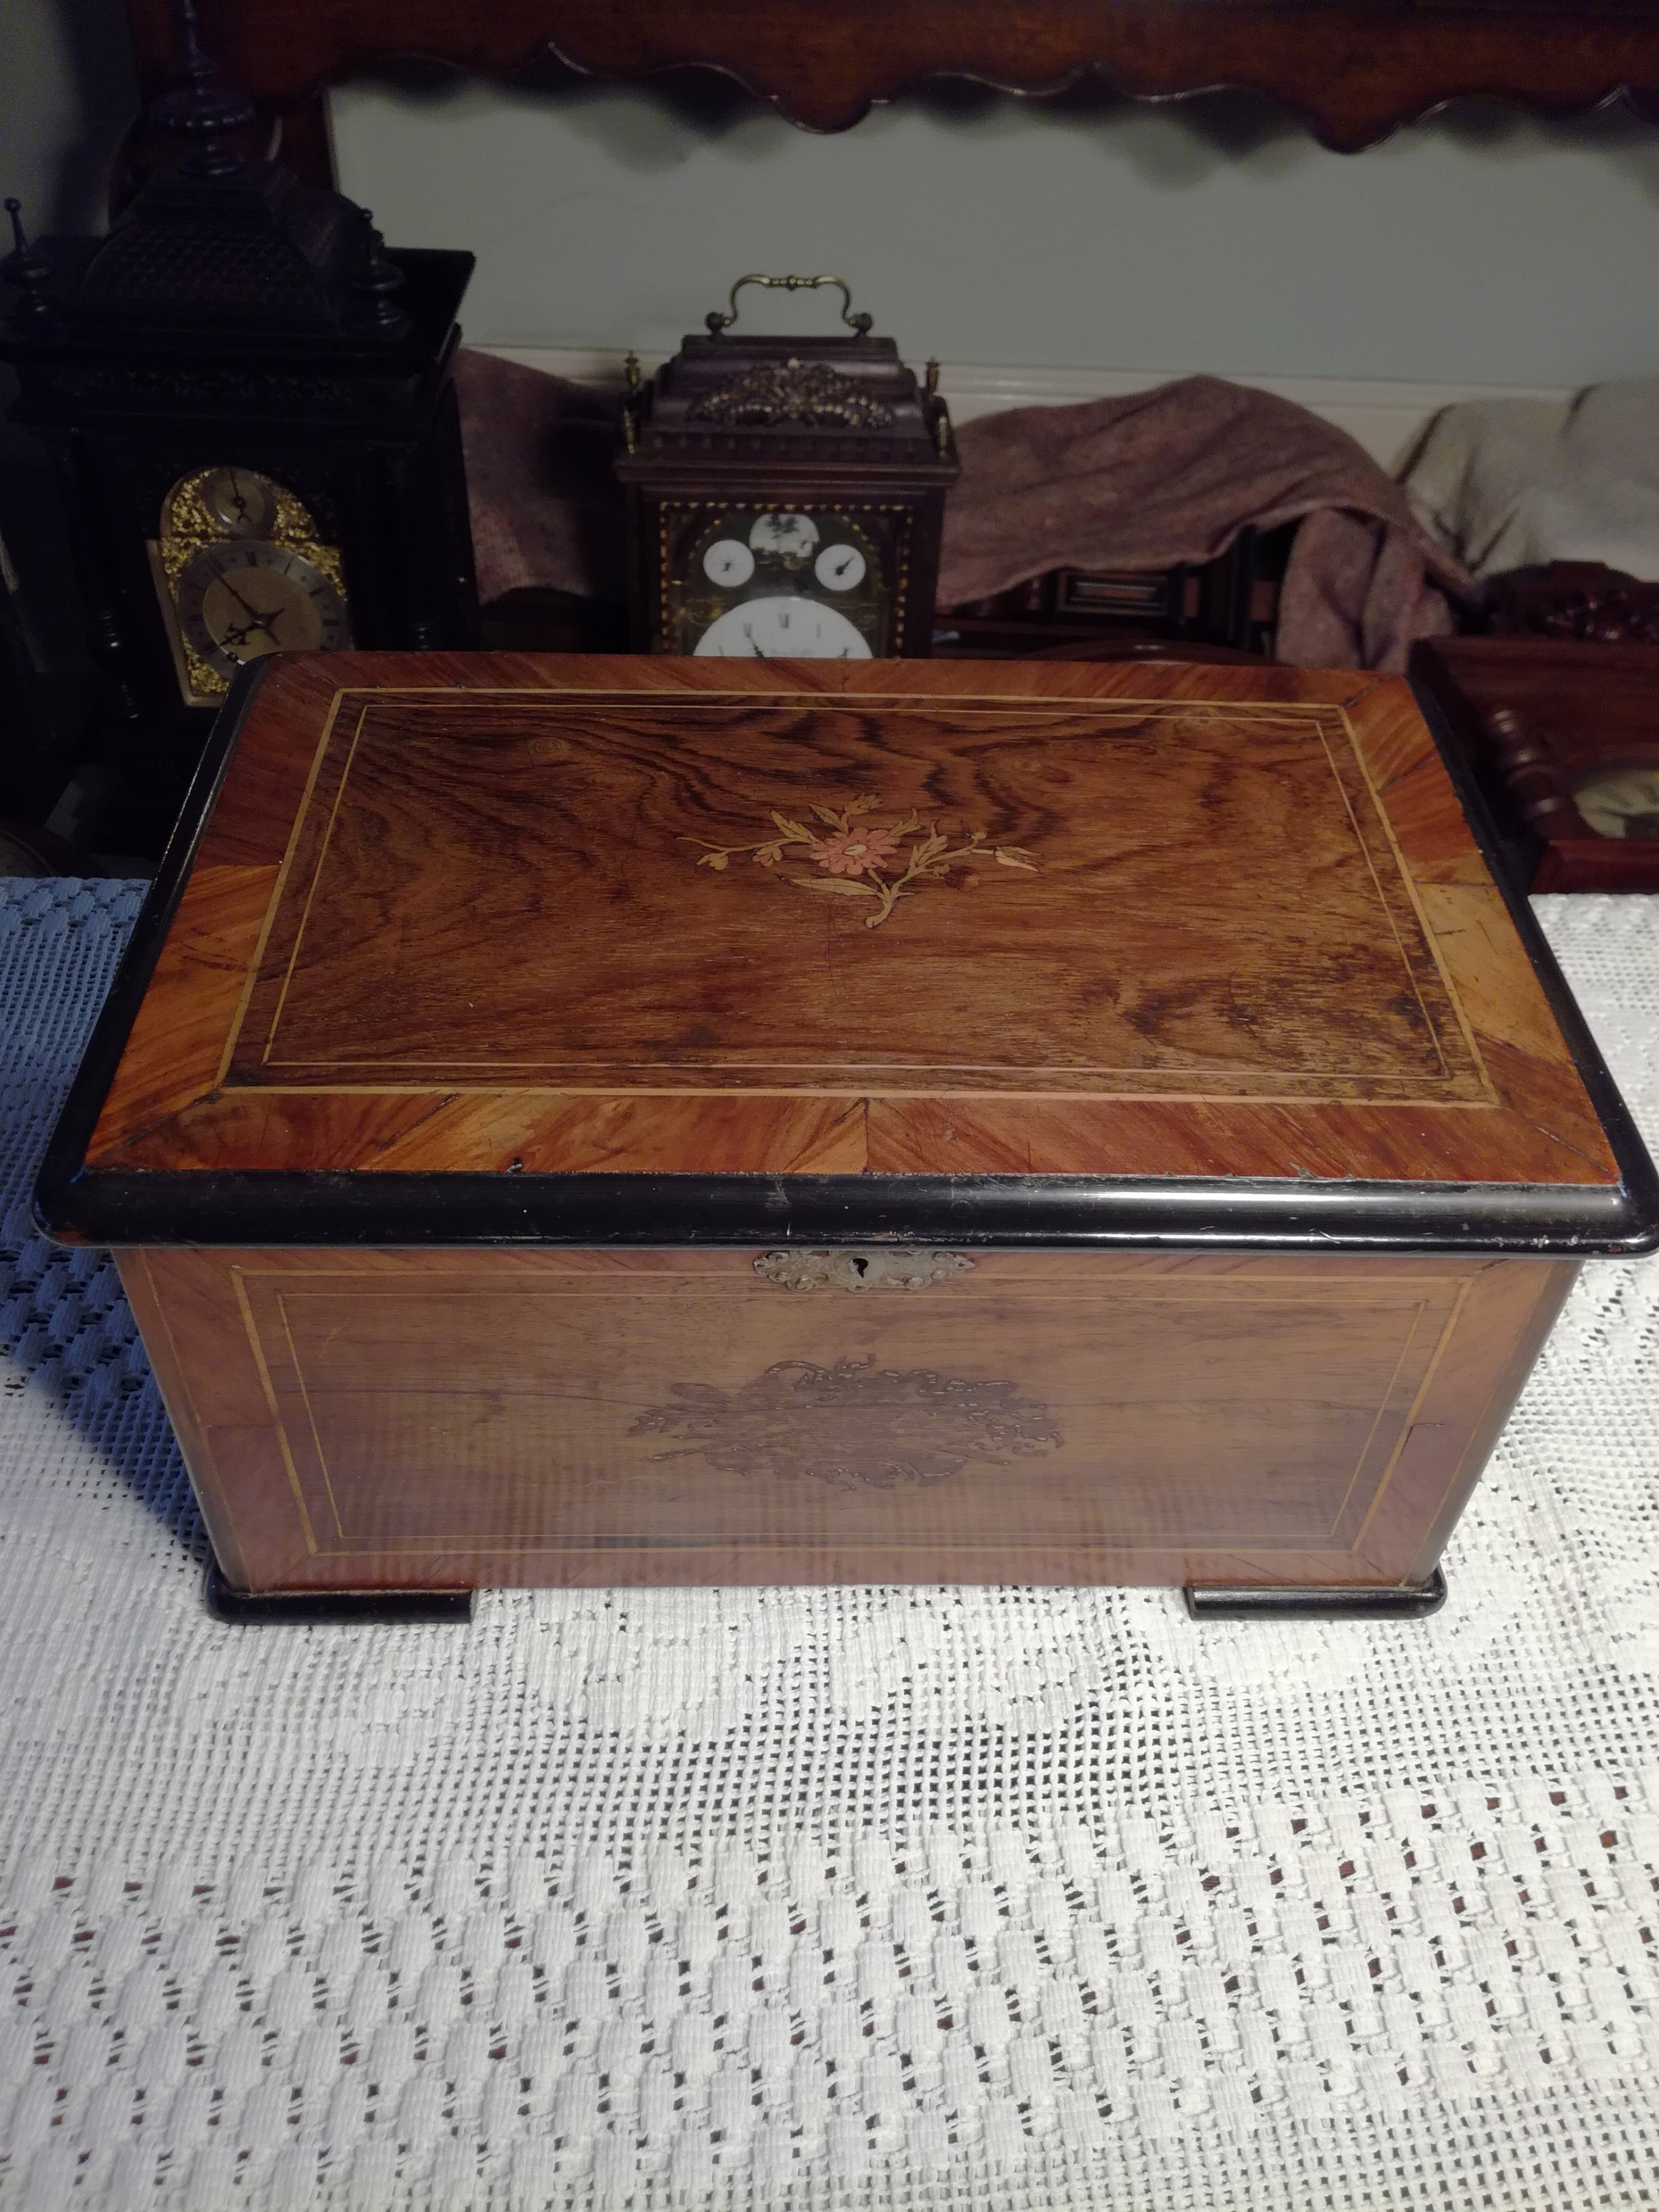 swiss orchestral music box fully overhauled